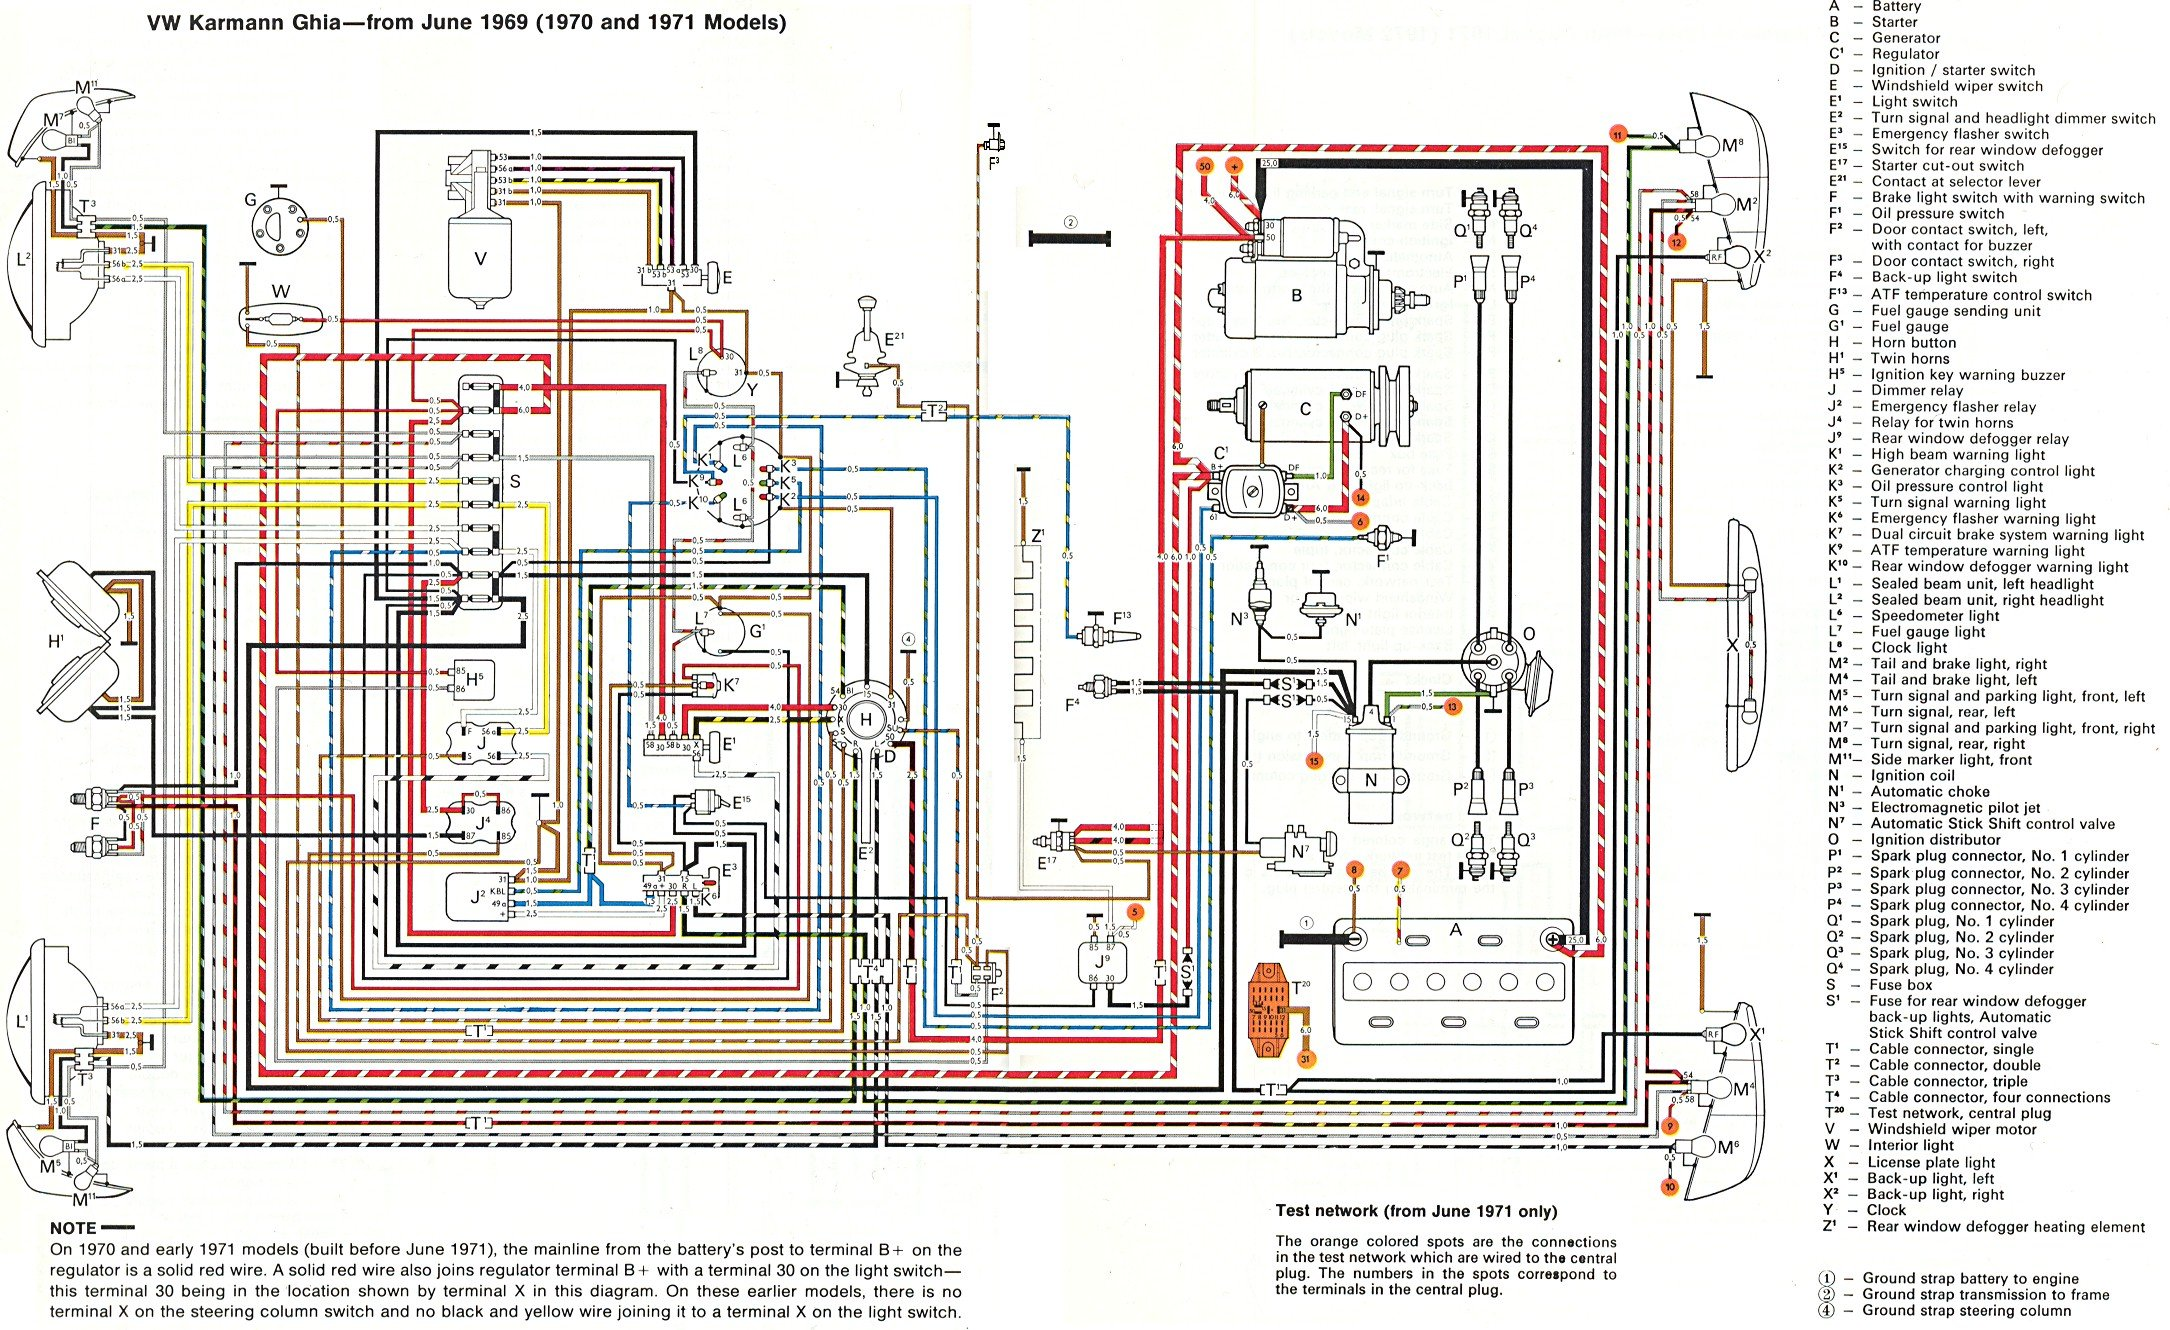 Karmann Ghia Wiring Diagrams Diagram Power Over Ethernet Free Download